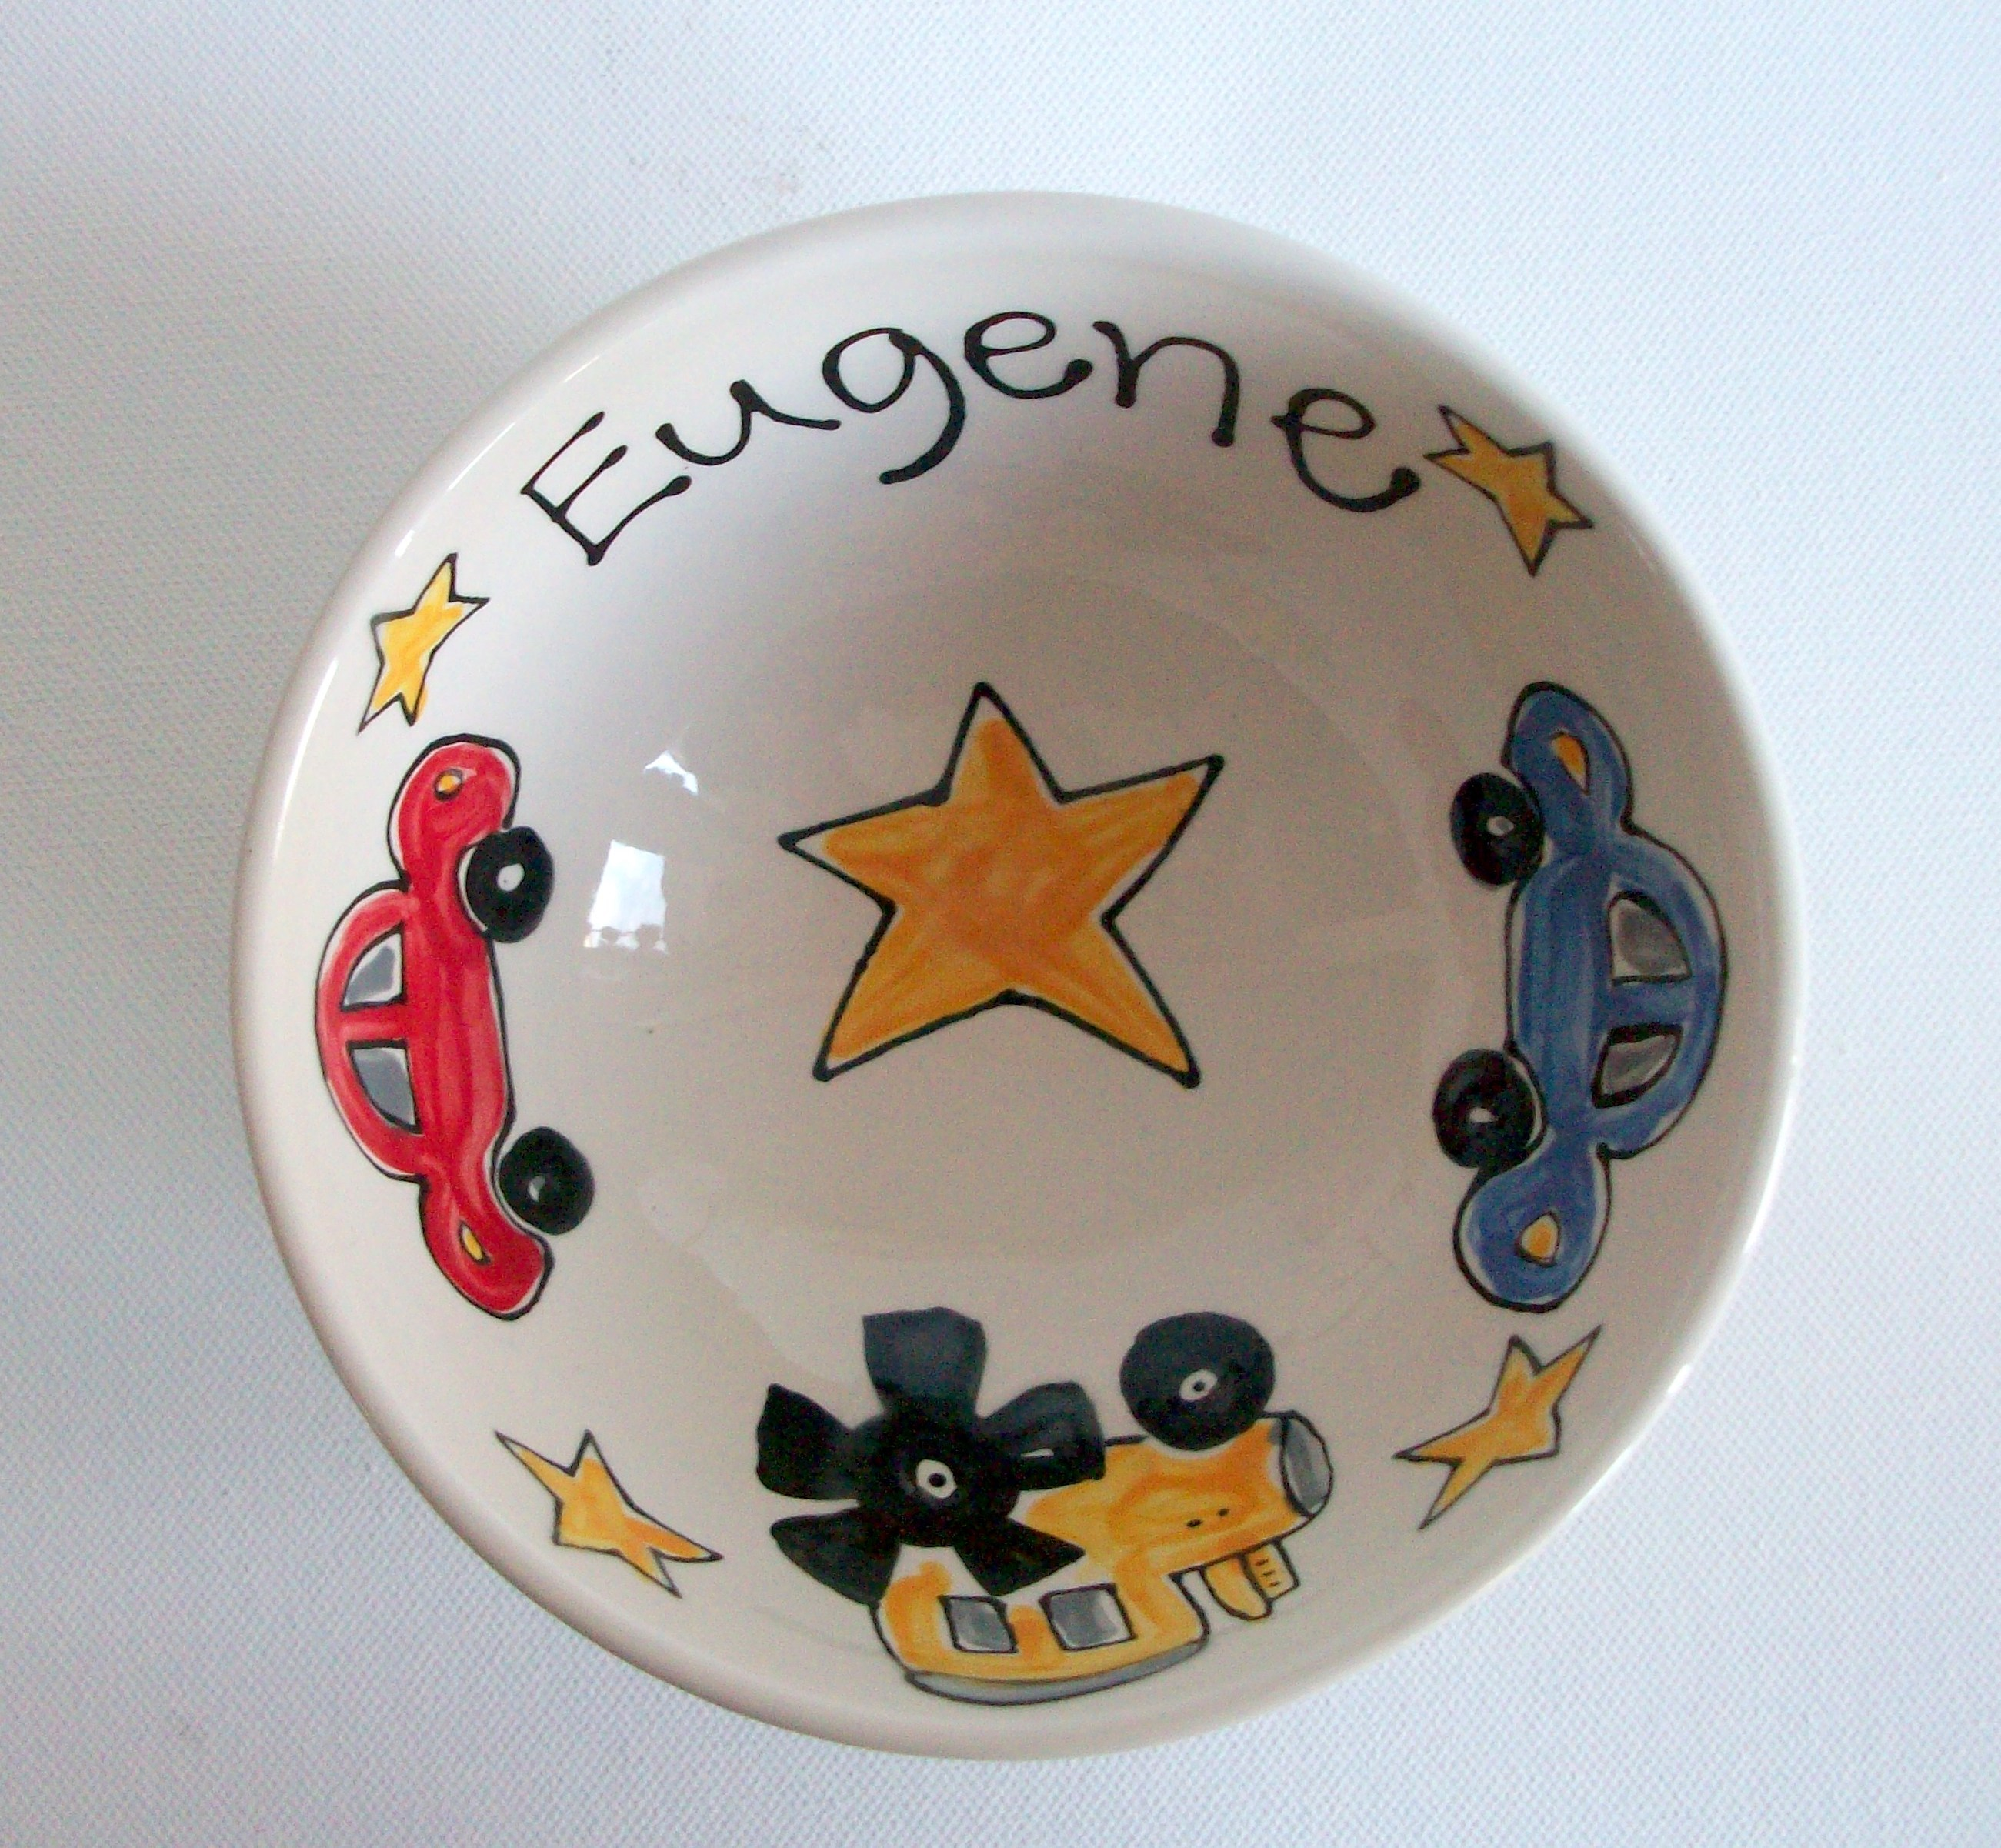 Personalised Cereal or Soup Bowl